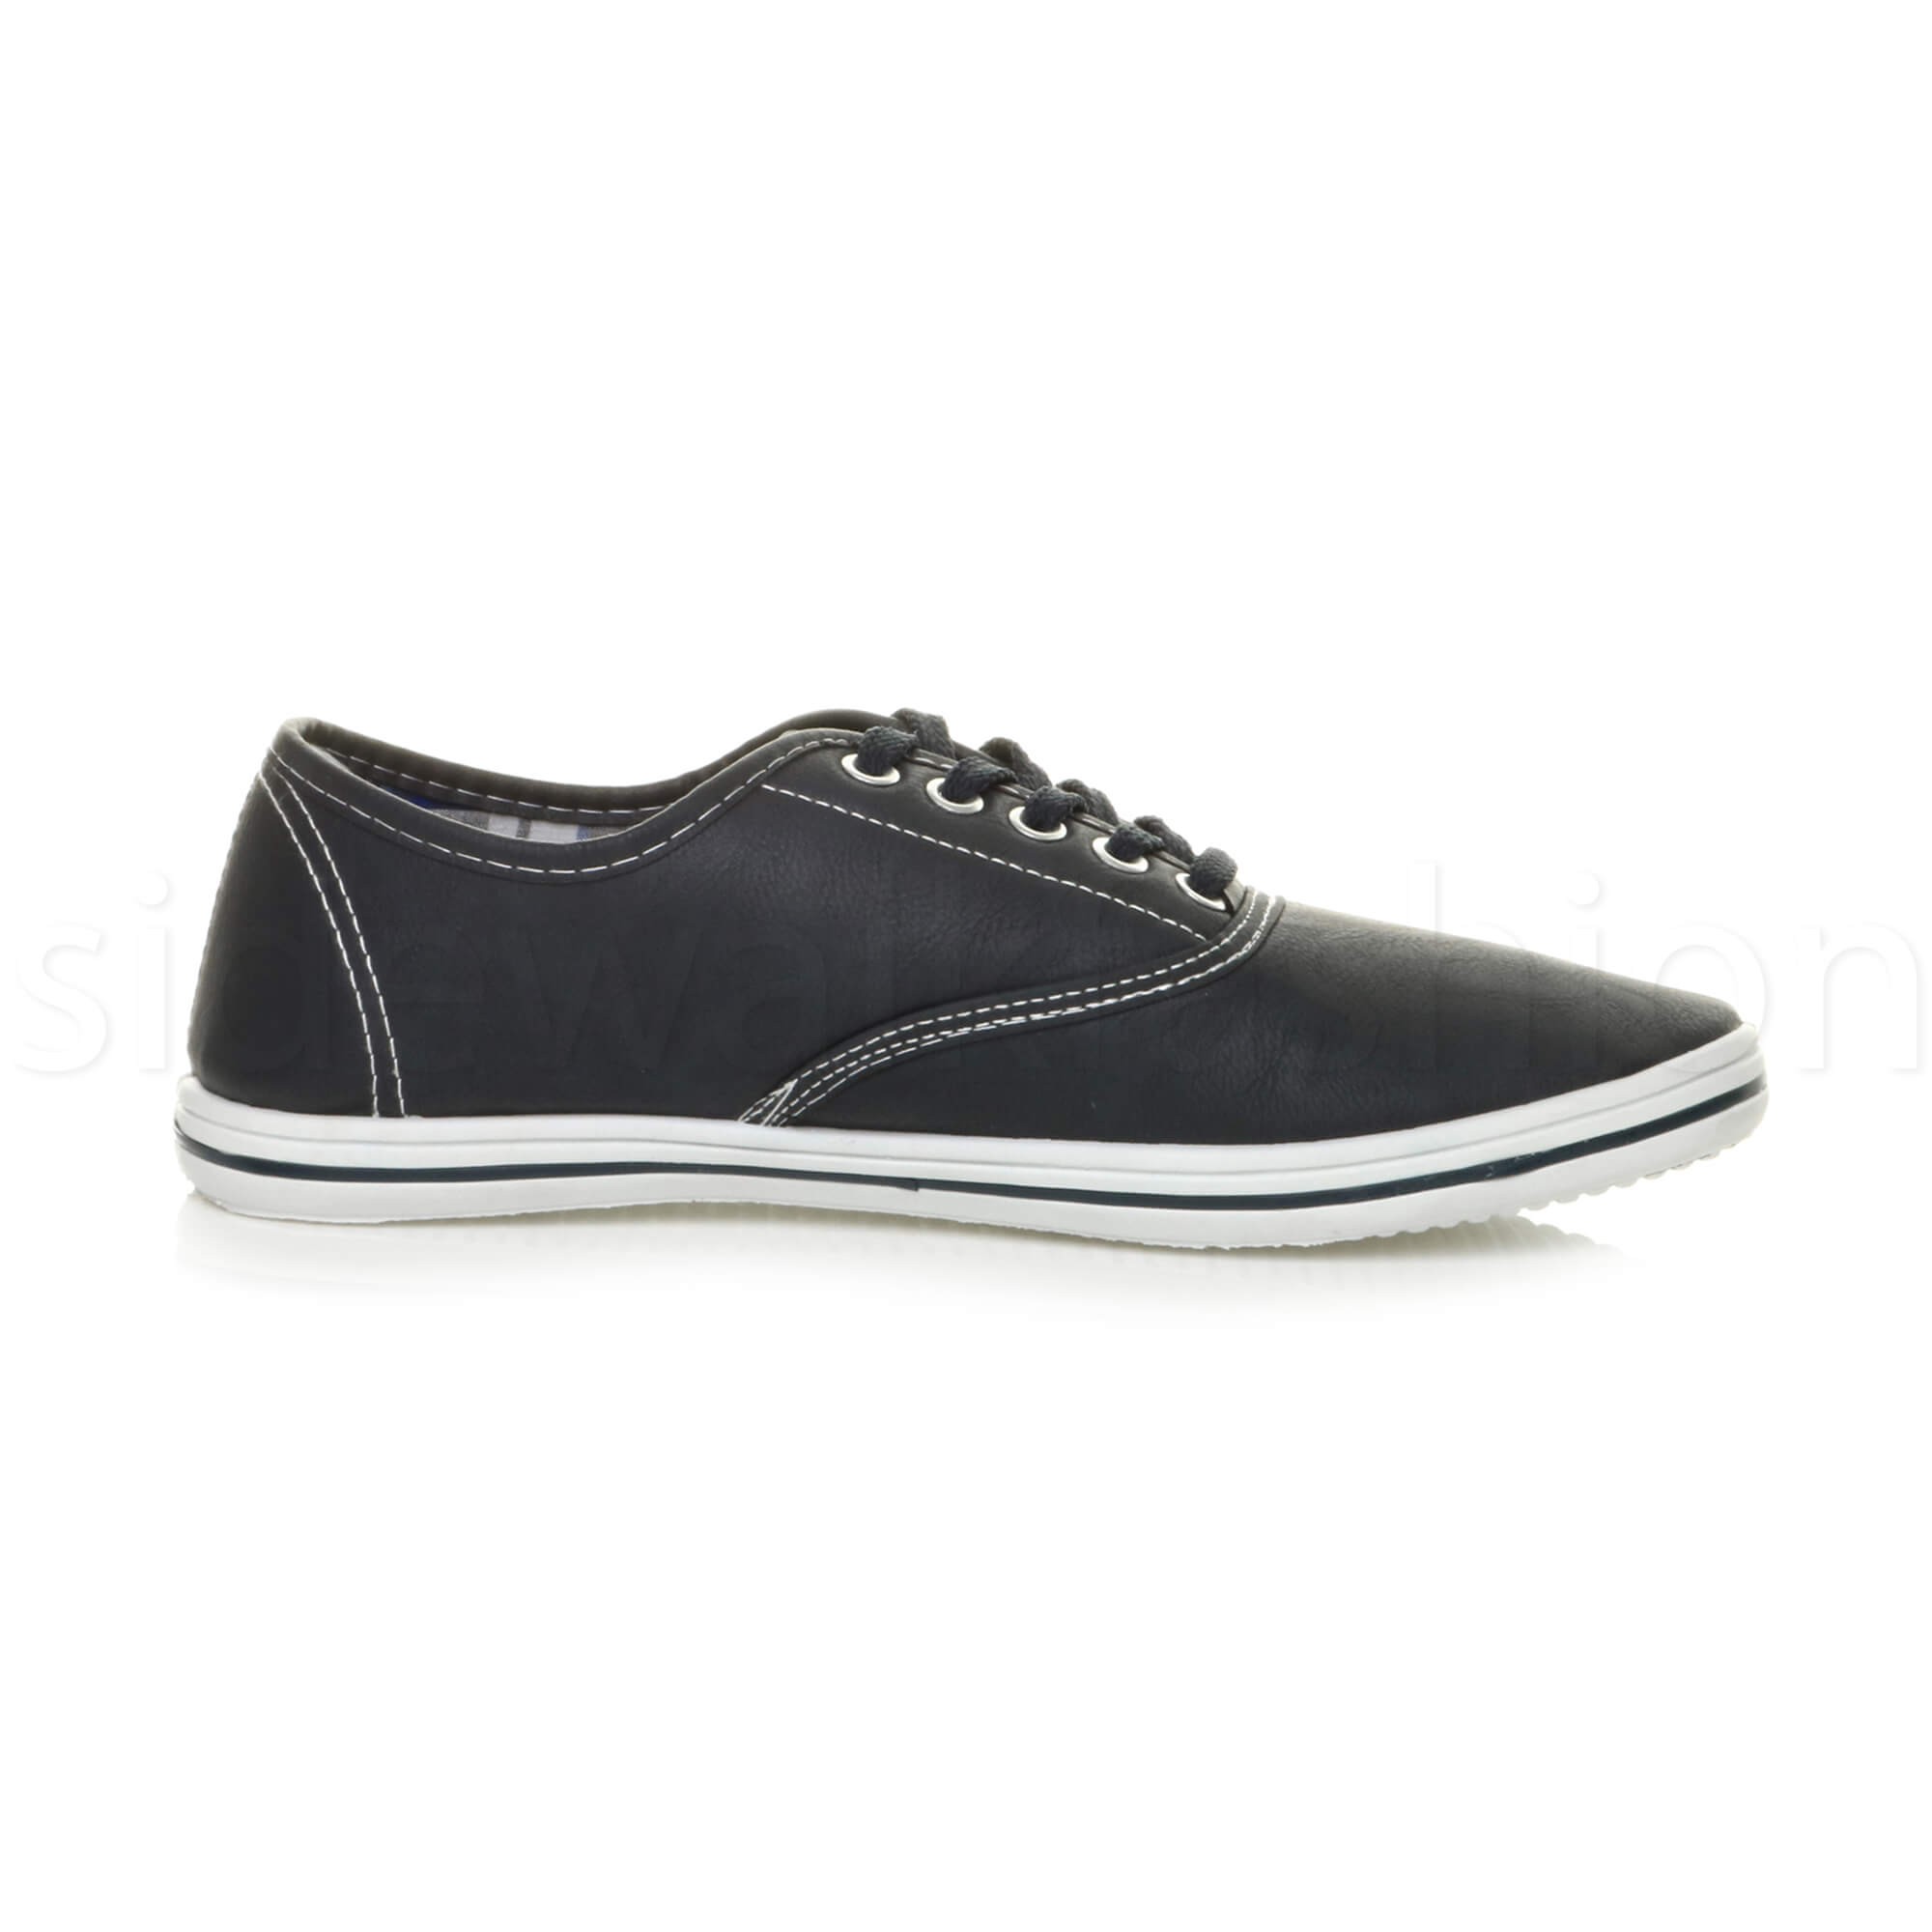 Mens-flat-lace-up-work-smart-plain-casual-pump-plimsoles-trainers-shoes-size thumbnail 11